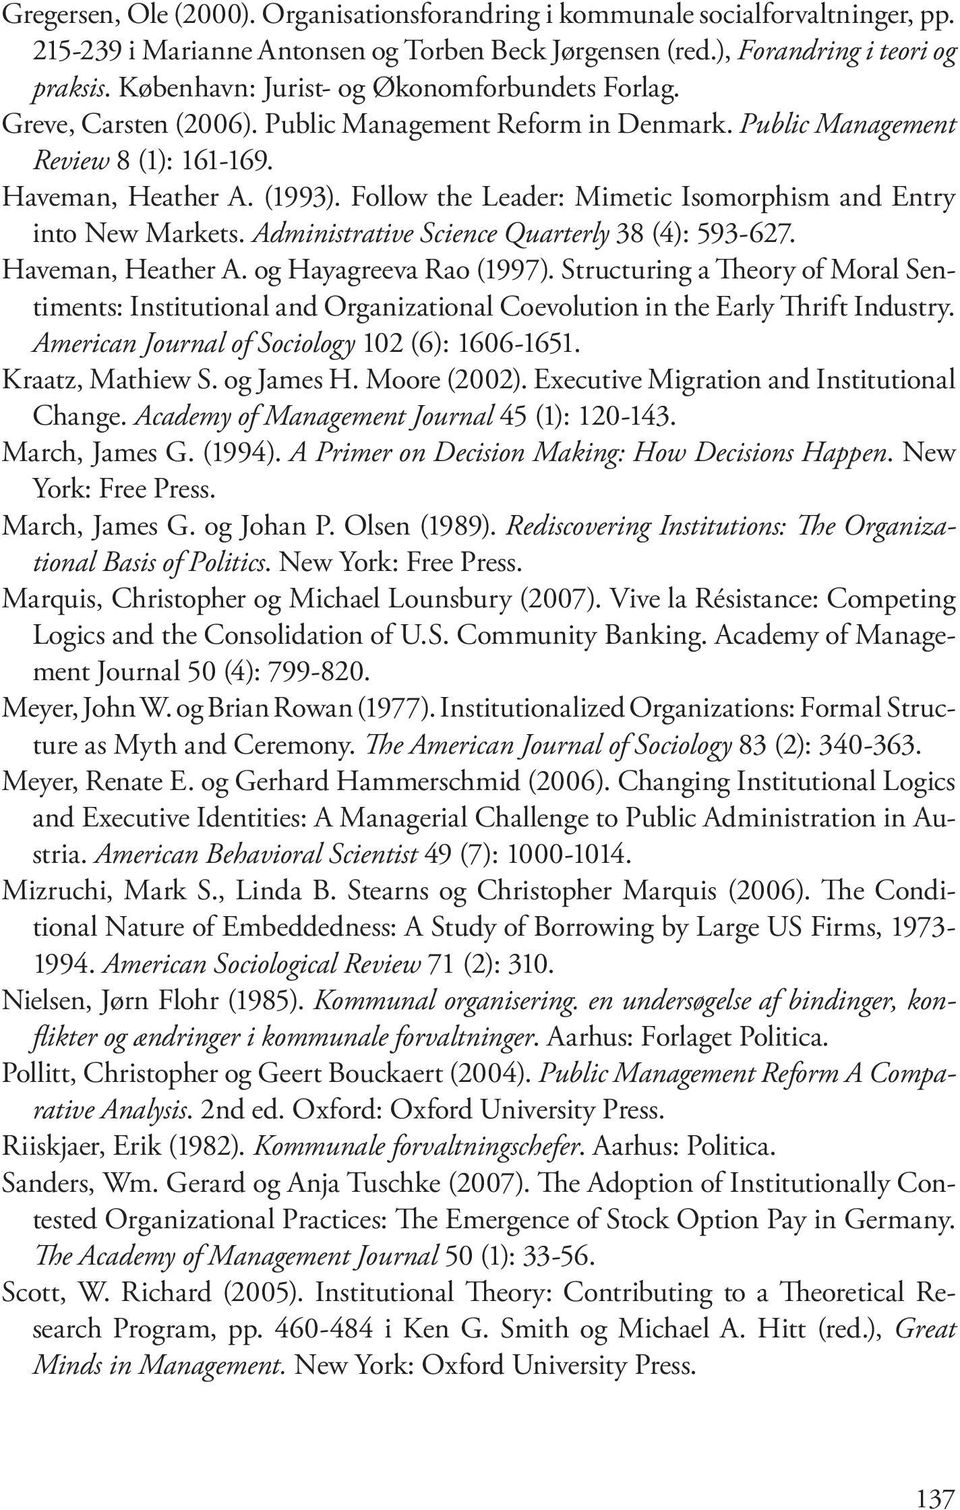 Follow the Leader: Mimetic Isomorphism and Entry into New Markets. Administrative Science Quarterly 38 (4): 593-627. Haveman, Heather A. og Hayagreeva Rao (1997).